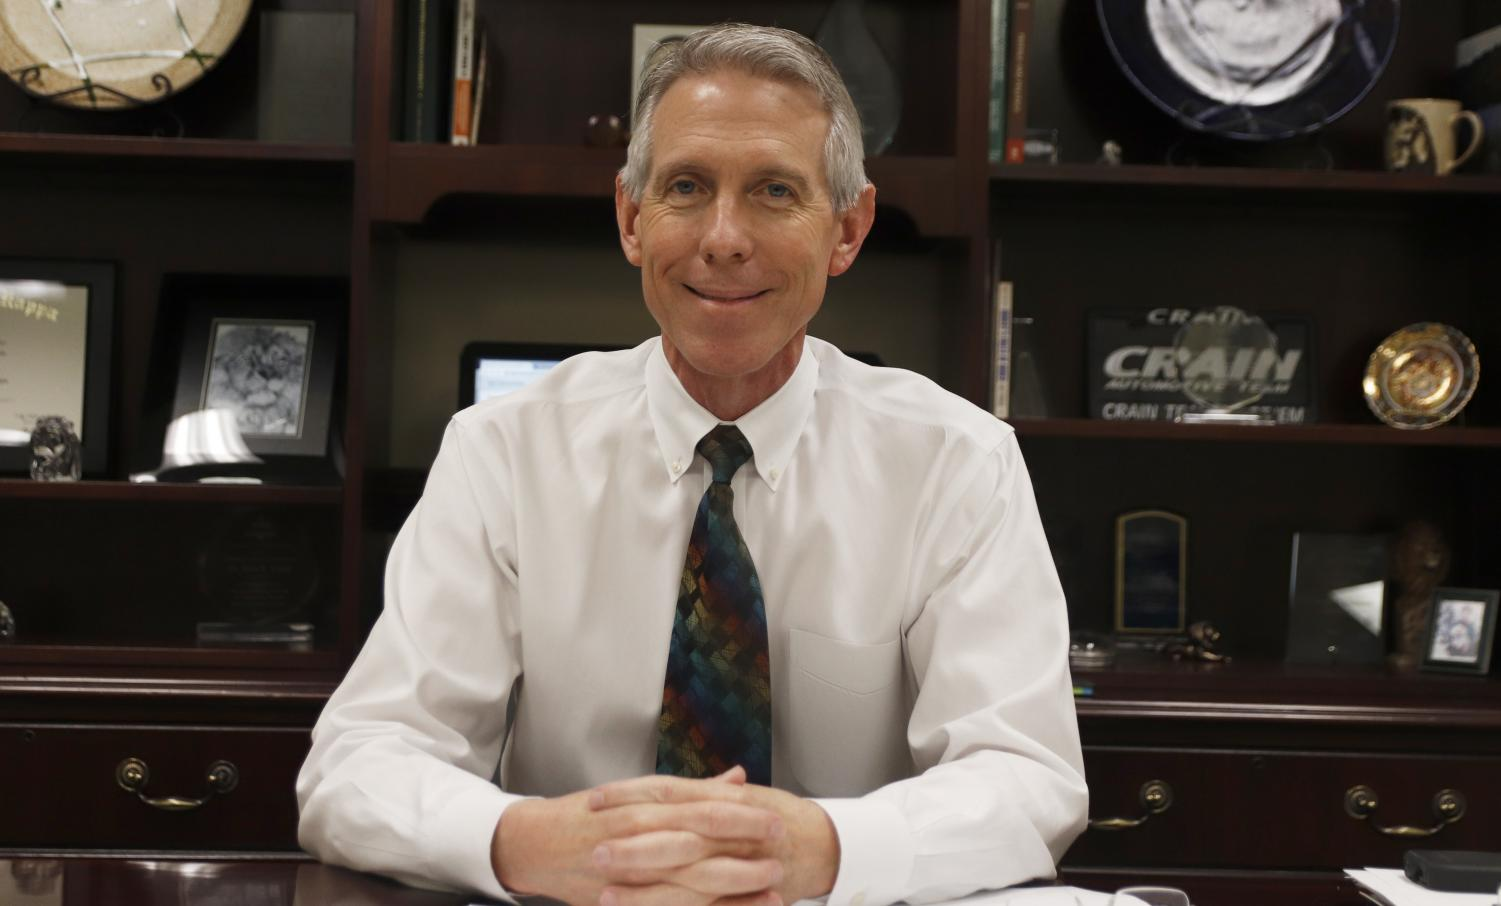 A typical day for President of the university Dr. John L. Crain involves supervising various campus activities. He also represents the university and makes appearances at events like